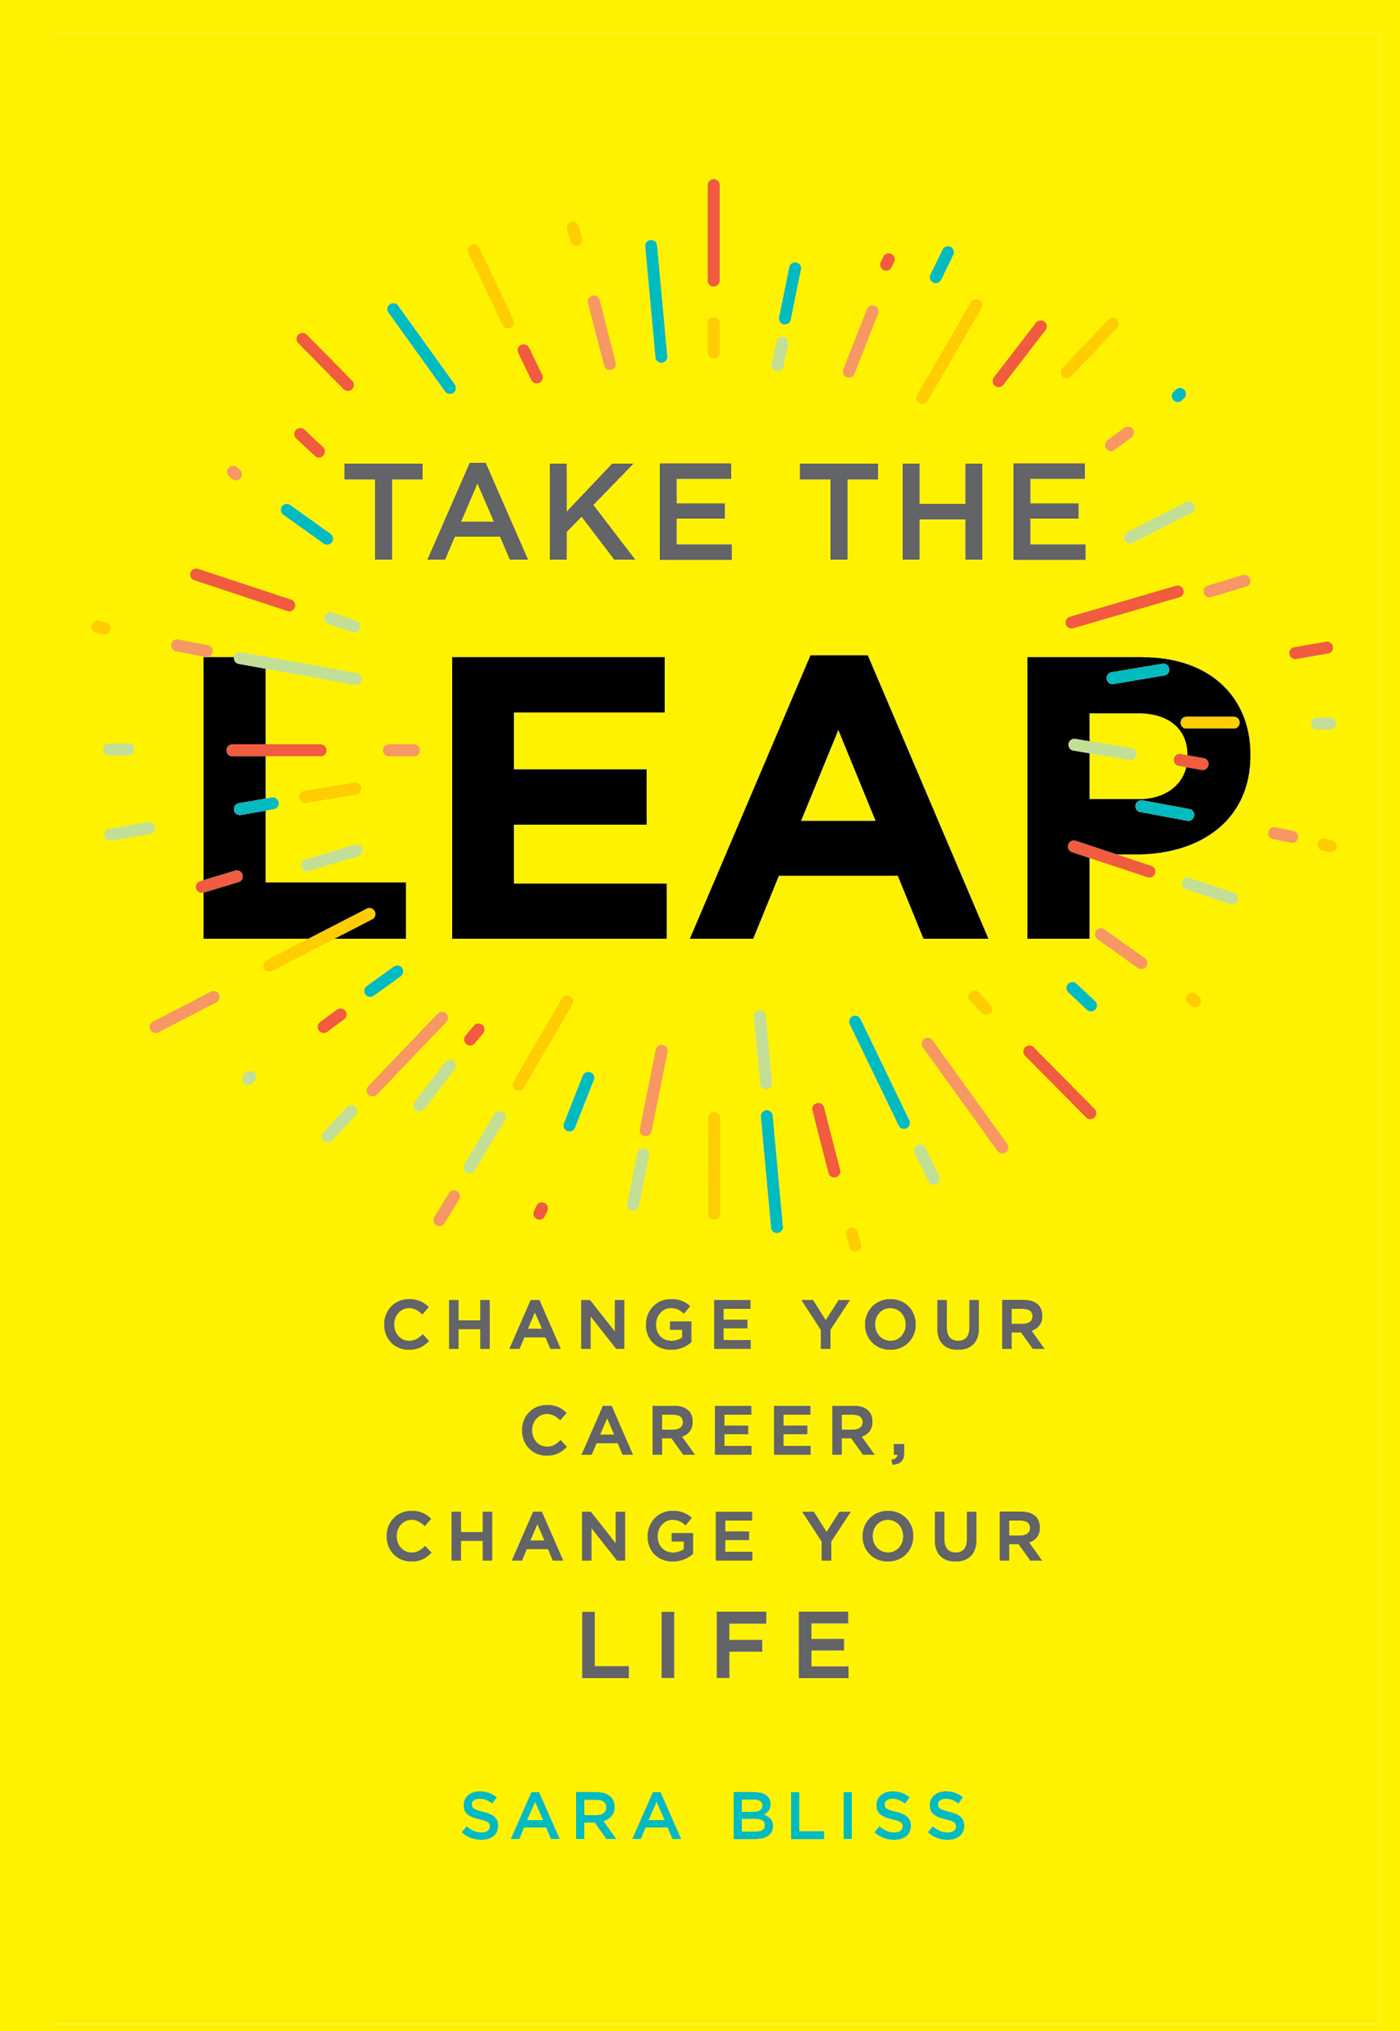 Take the leap cover.jpg